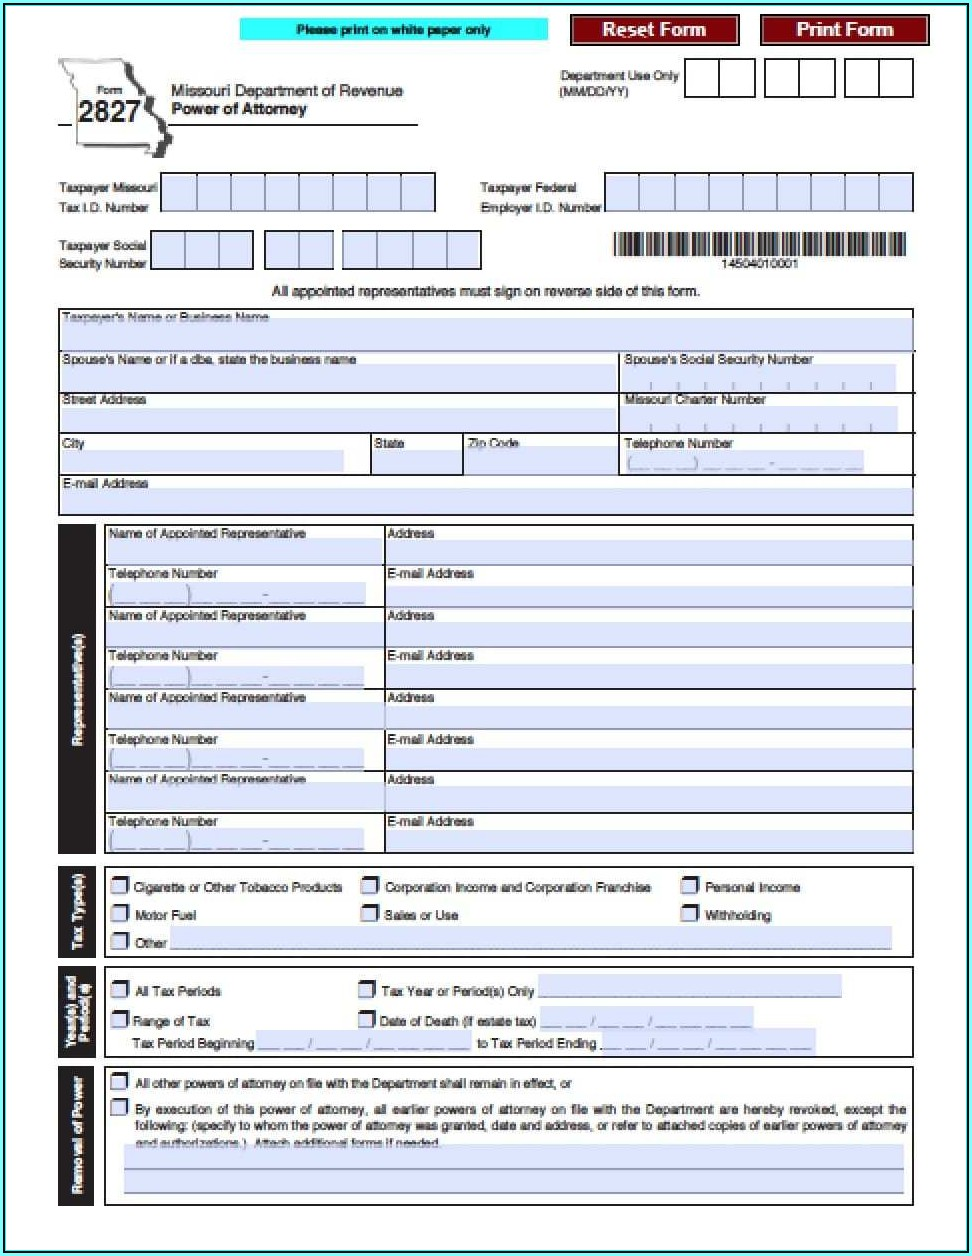 Durable Power Of Attorney Form Missouri Financial